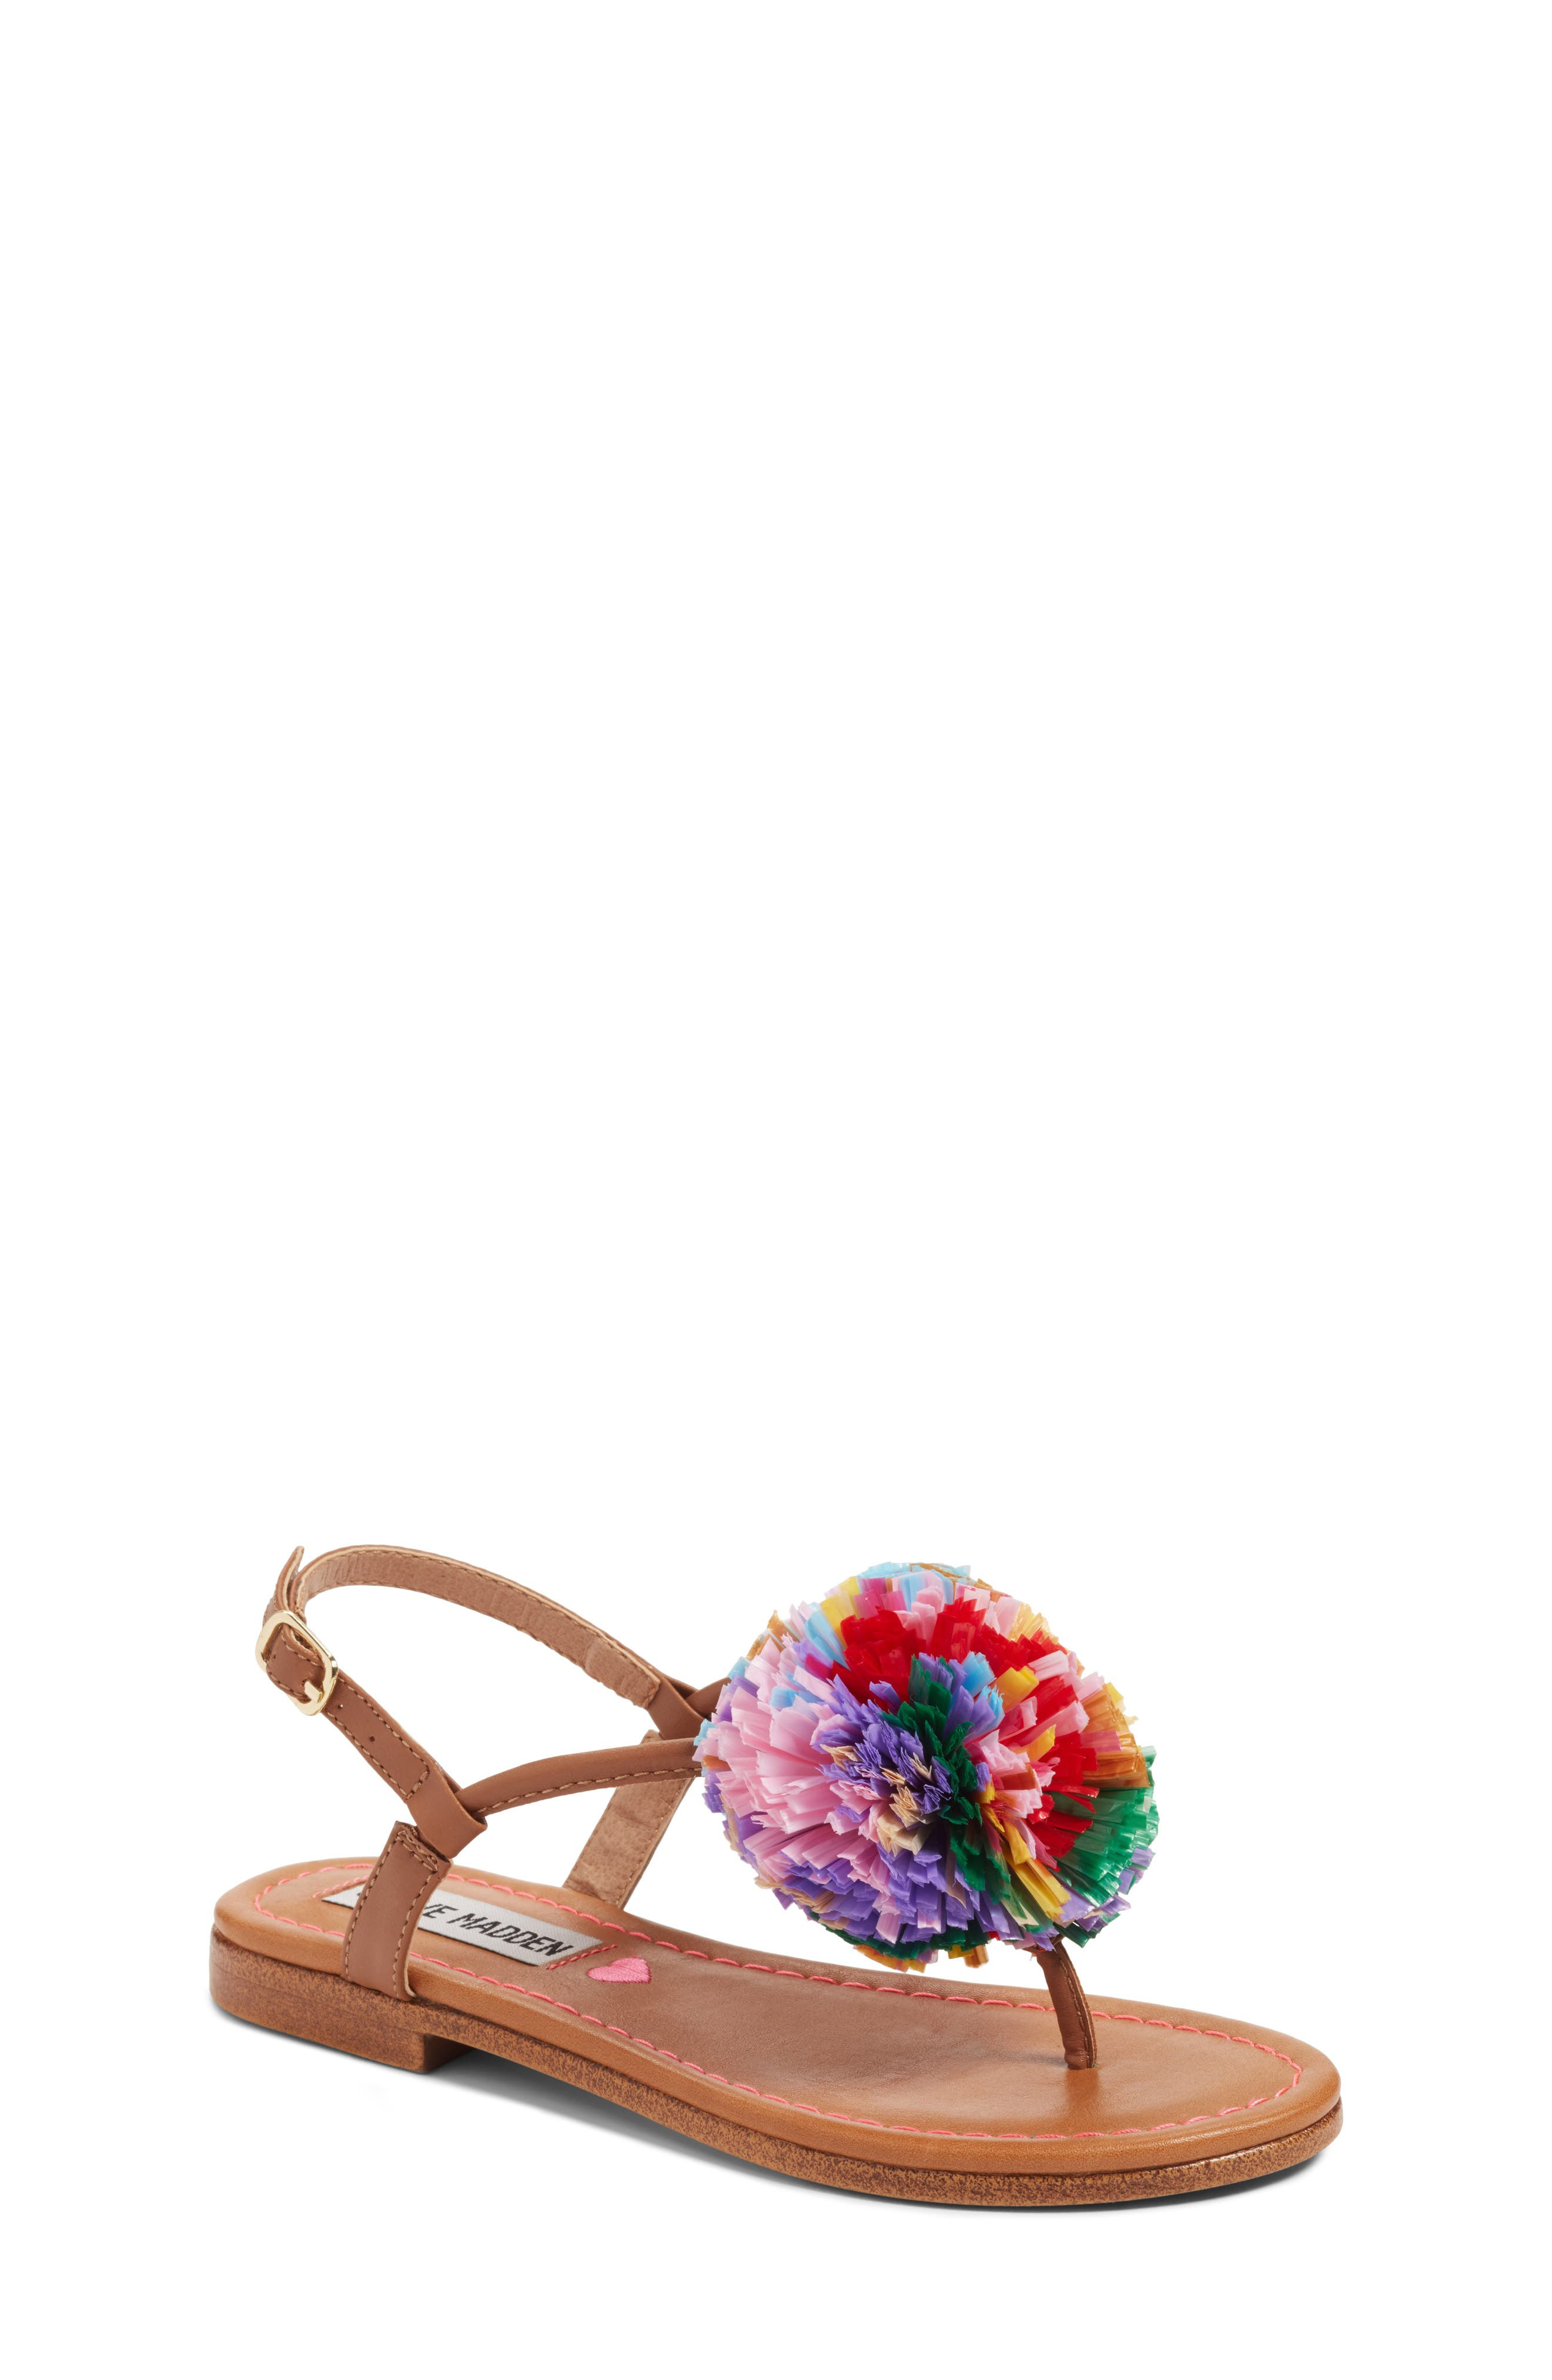 JCherry Pompom Sandal,                             Main thumbnail 1, color,